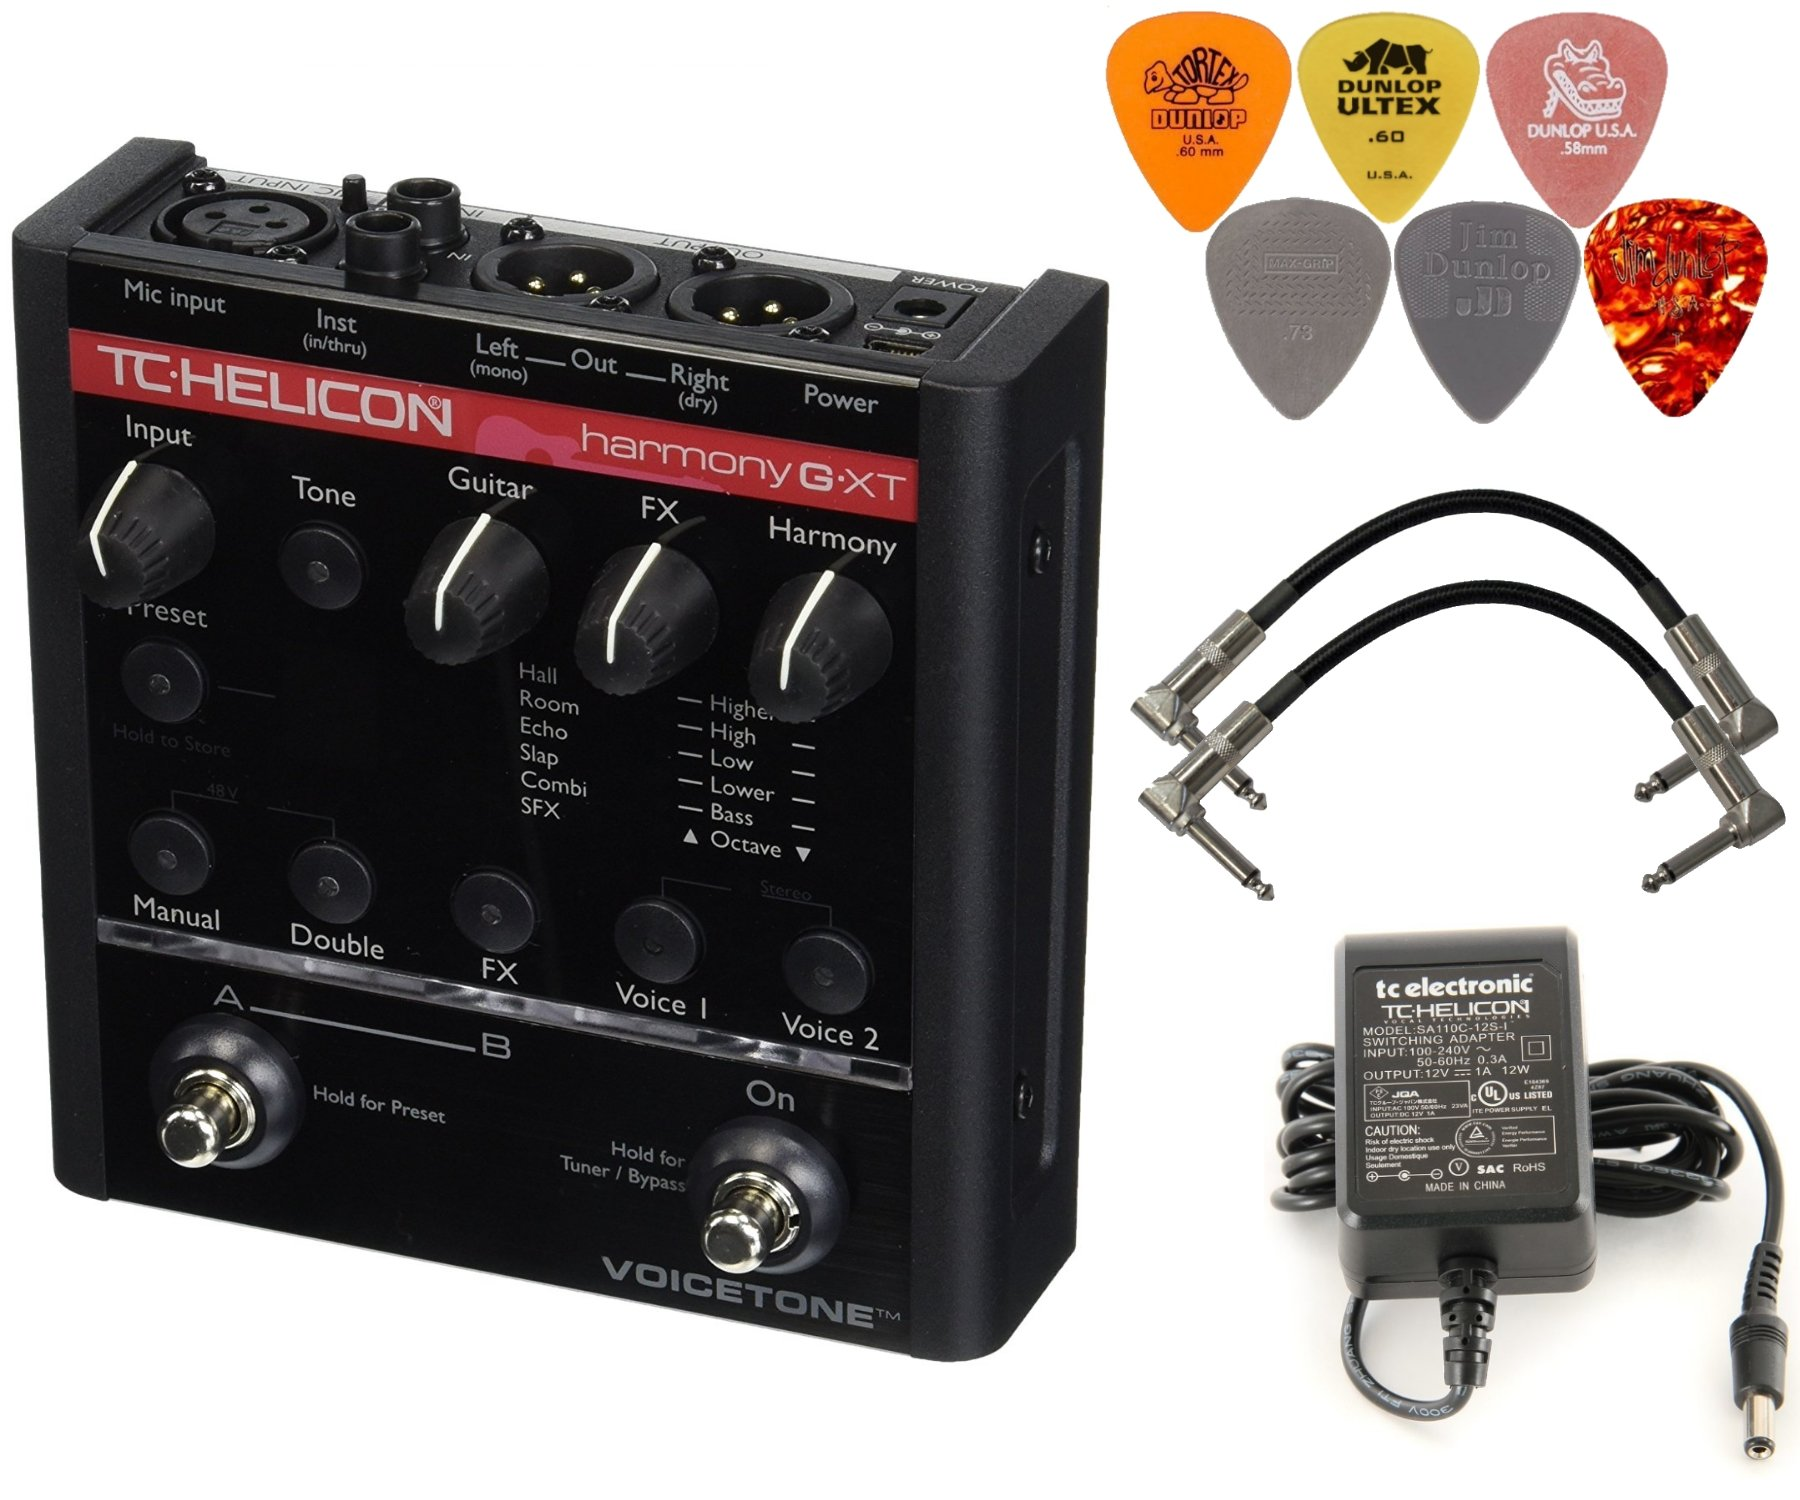 TC Helicon VoiceTone Harmony-G XT Vocal Effects Processor Bundle with 2 Patch Cables and 6 Assorted Dunlop Picks